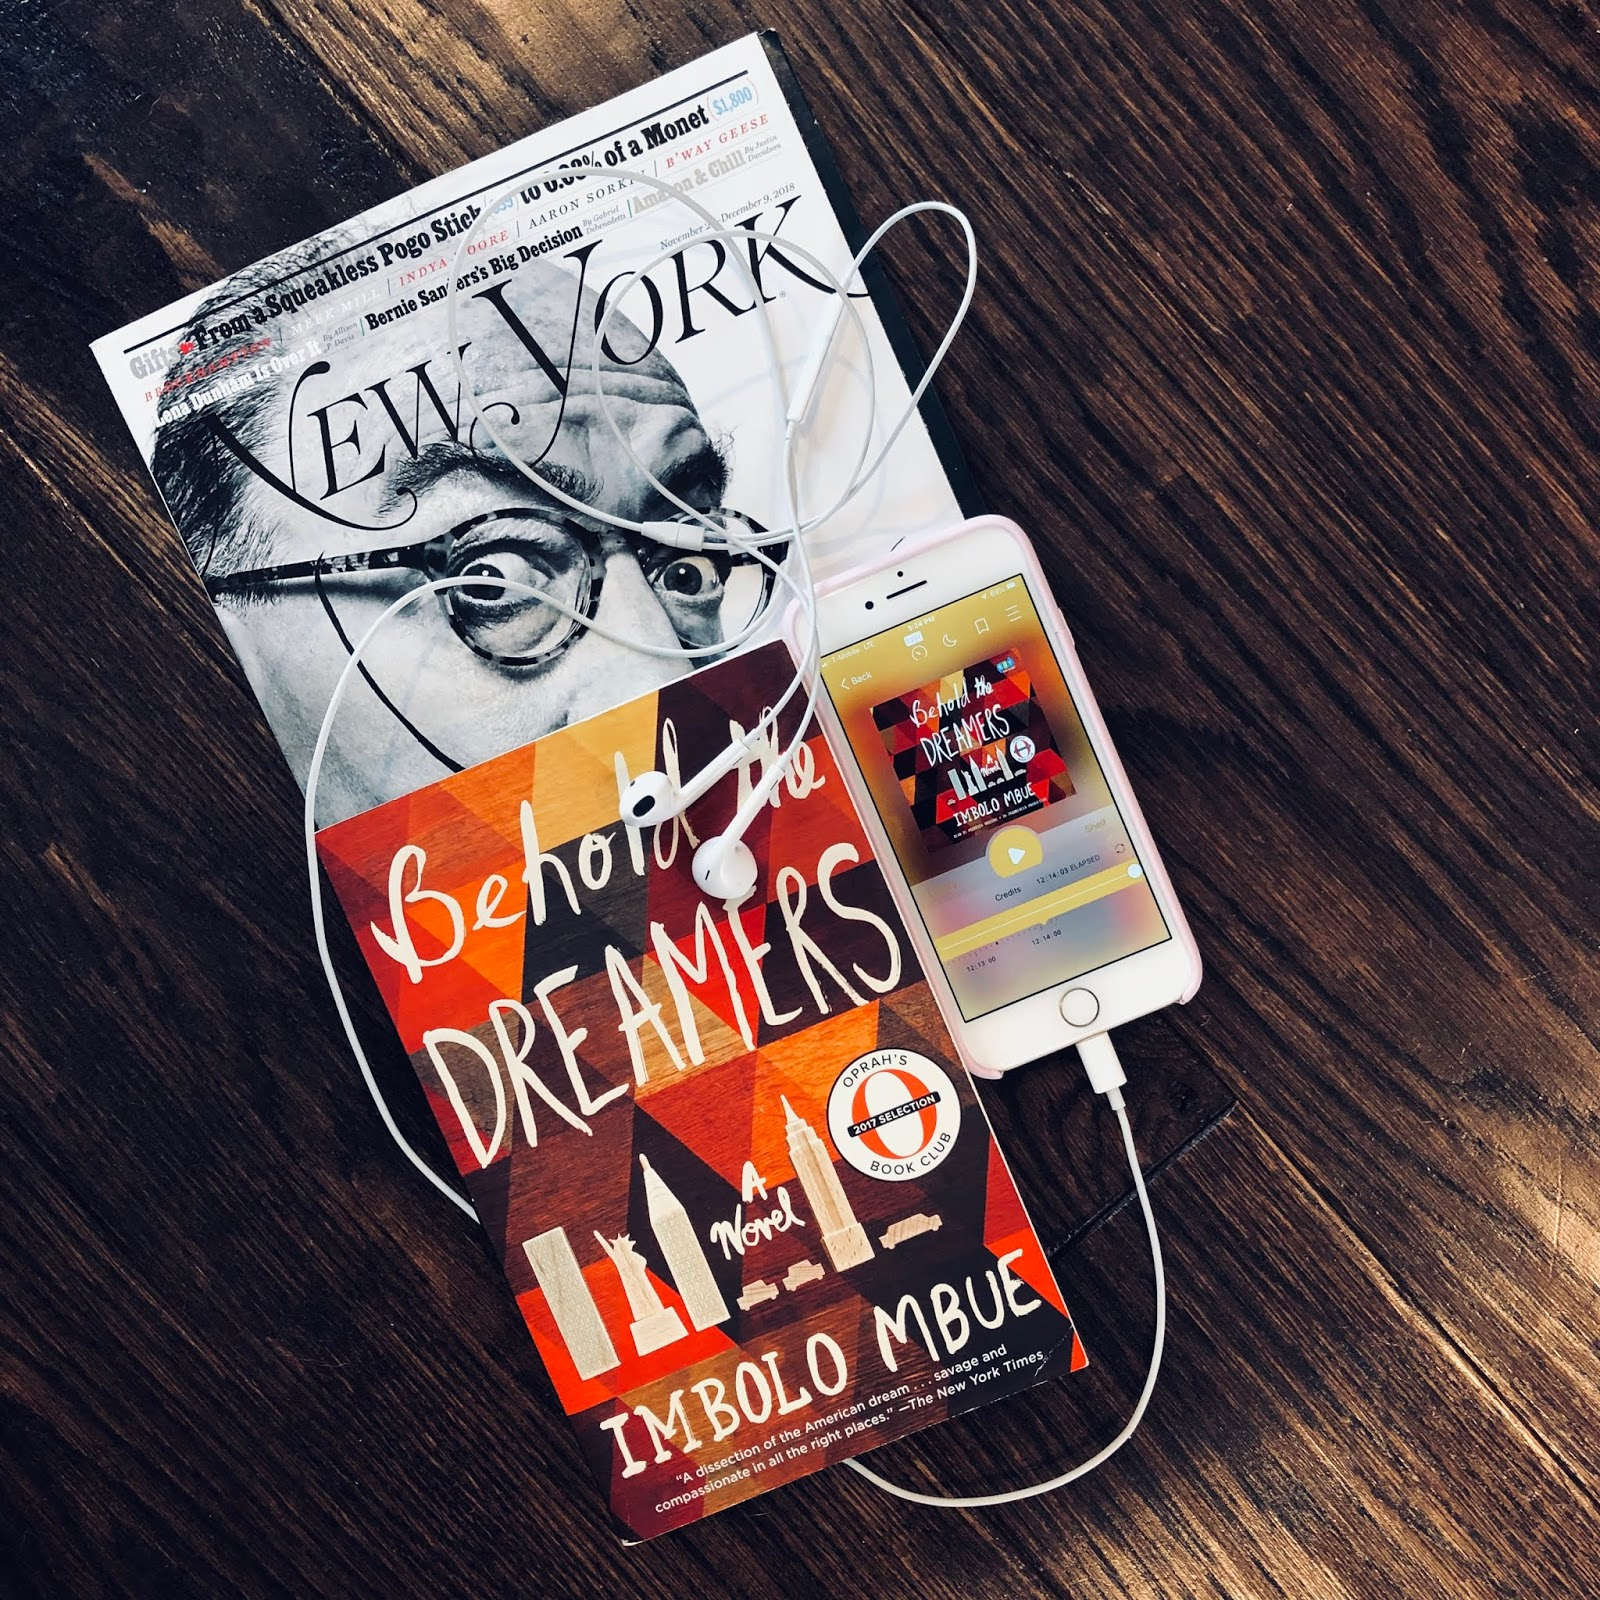 Executive Privilege Audiobook: TRENDY SIMPLE LIFE: Behold The Dreamers By Imbolo Mbue